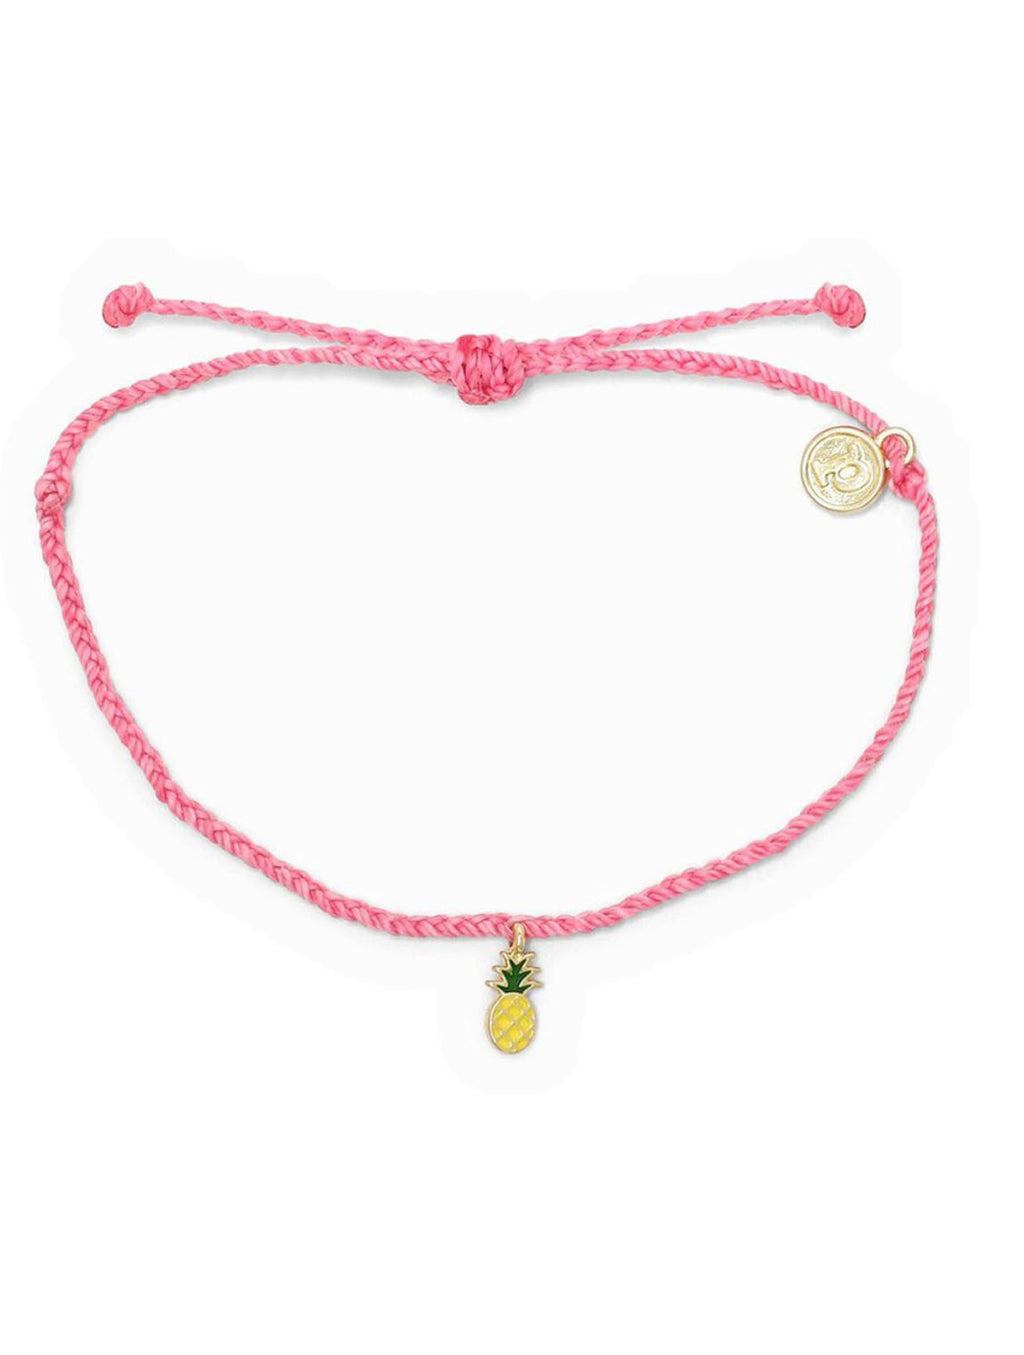 Pura Vida Pineapple Bracelet in Pink